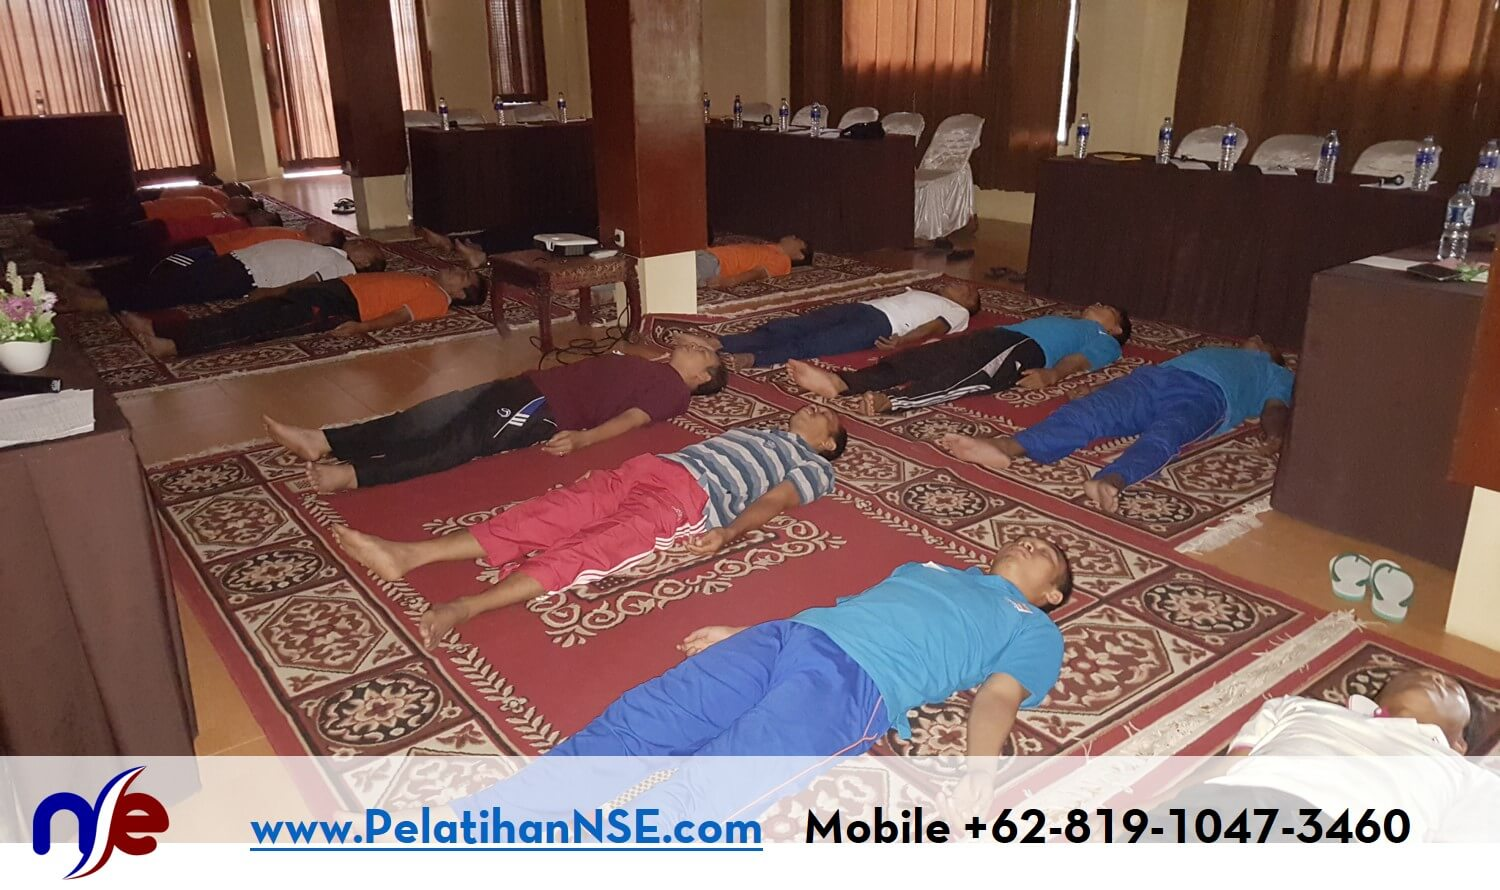 NSE Basic Self Empowerment KAI 26-27 September 2016 - Speedy Relaxation Technique sambil Berbaring